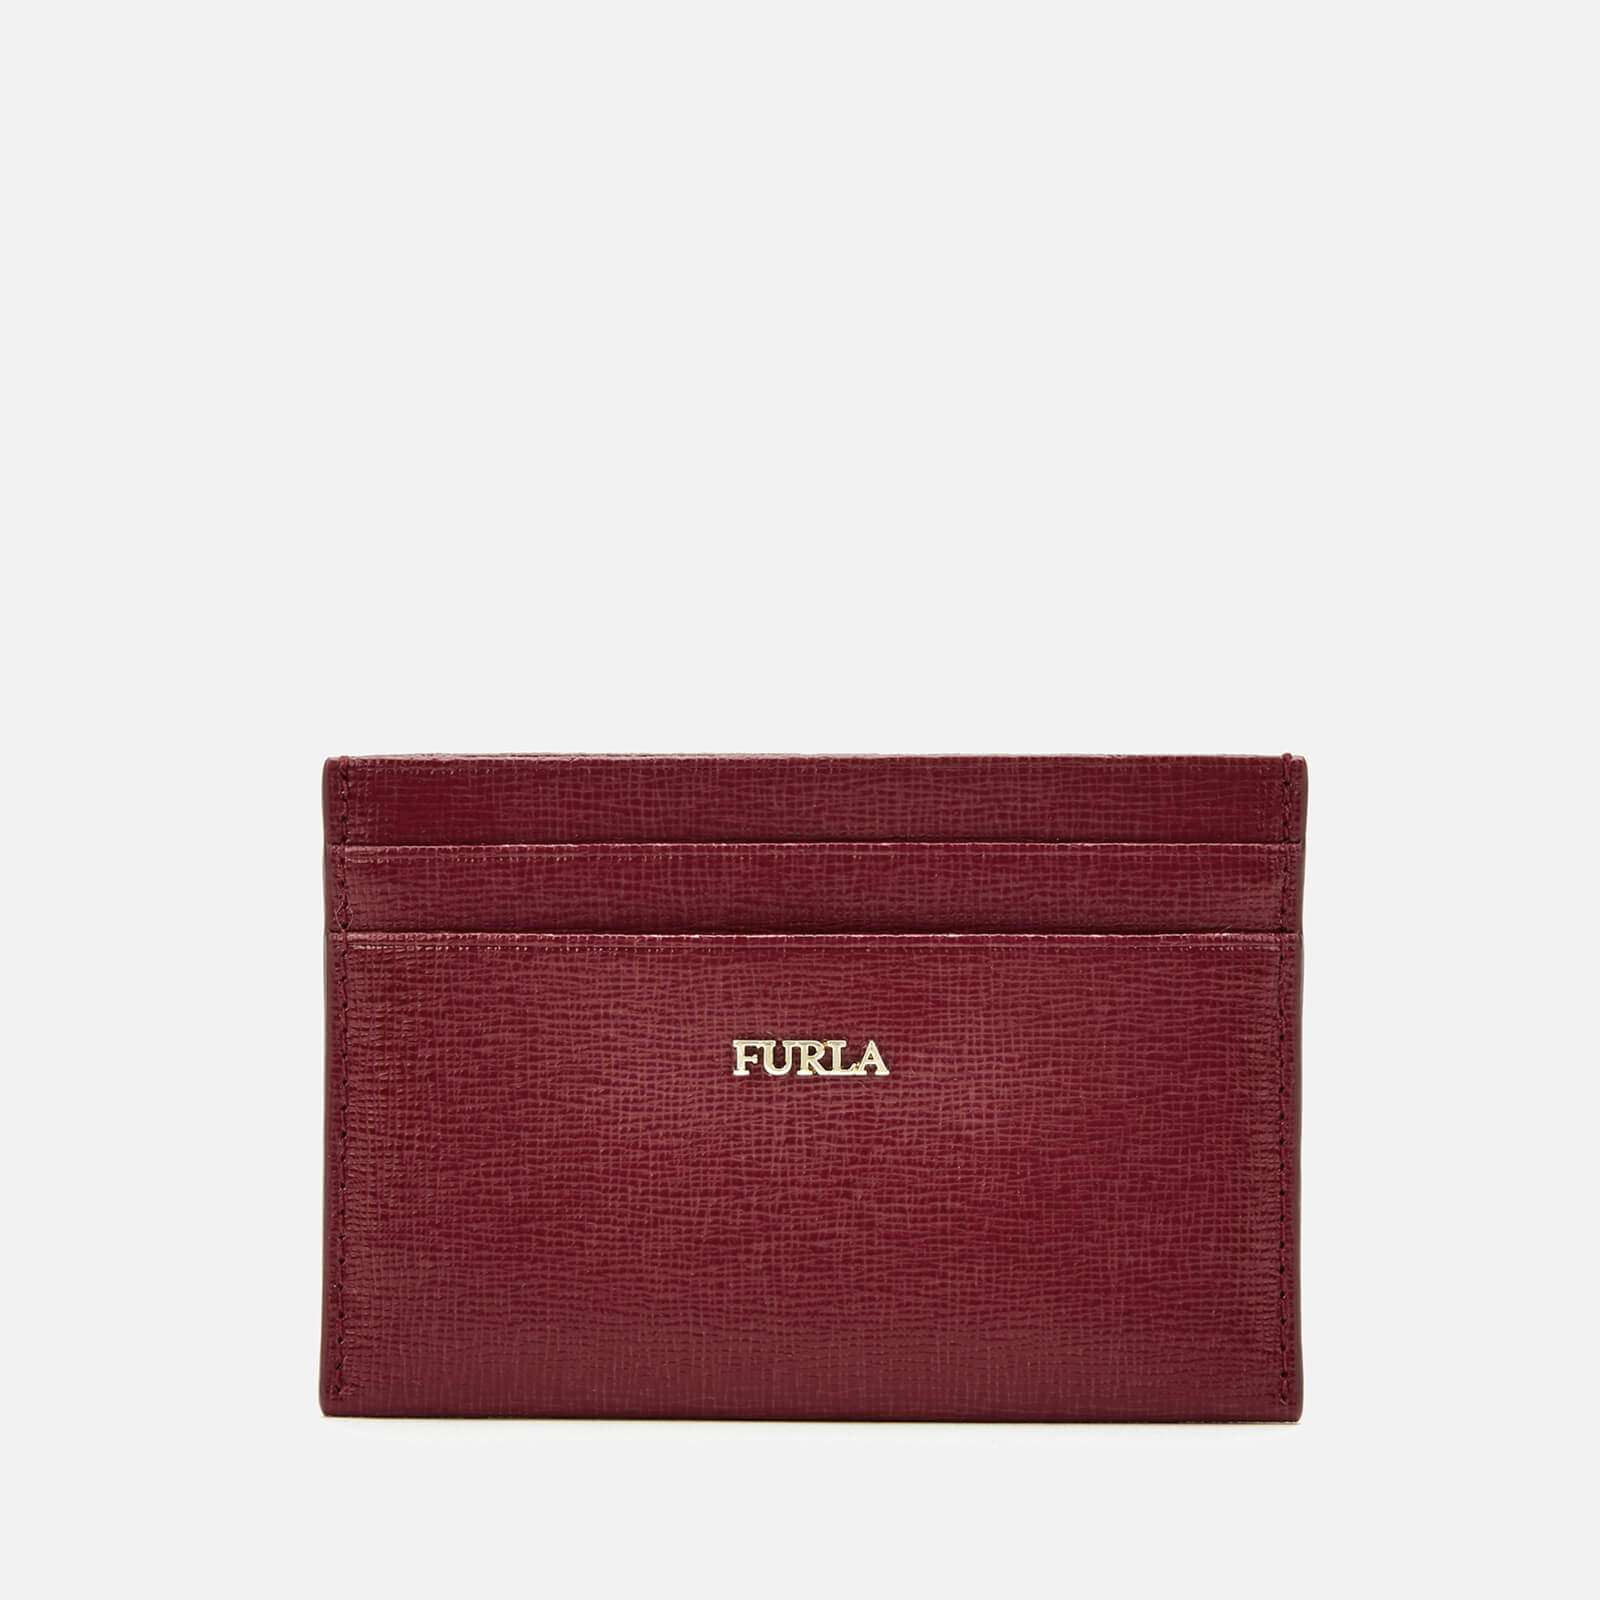 Furla Women's Babylon Small Credit Card Case - Red 原價55英鎊 優惠價33